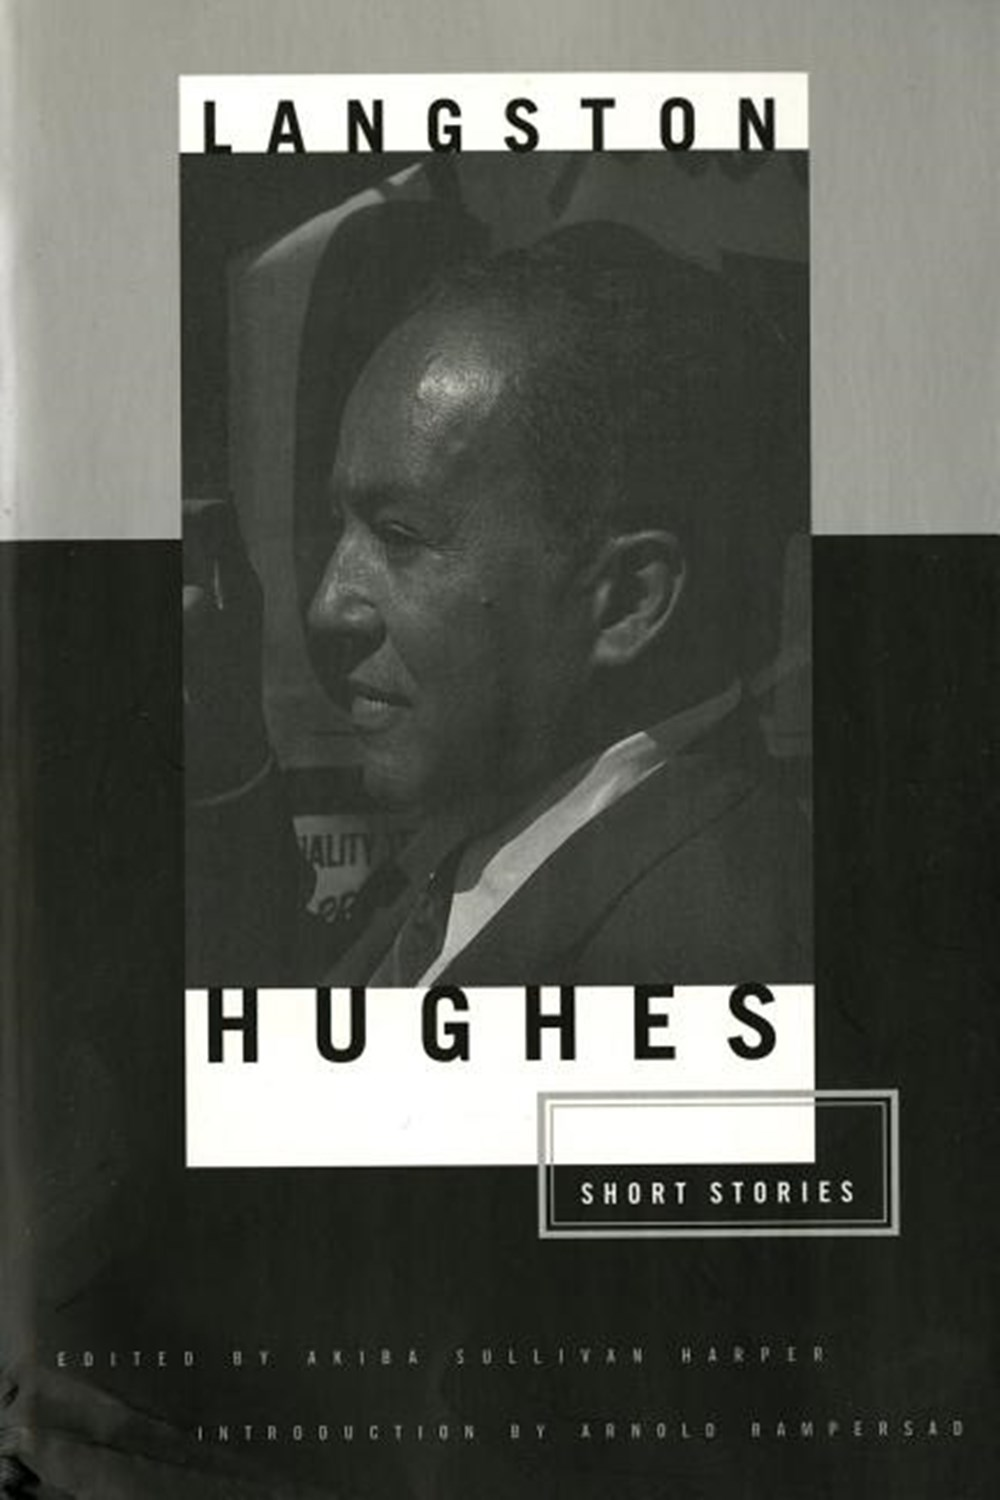 Short Stories of Langston Hughes